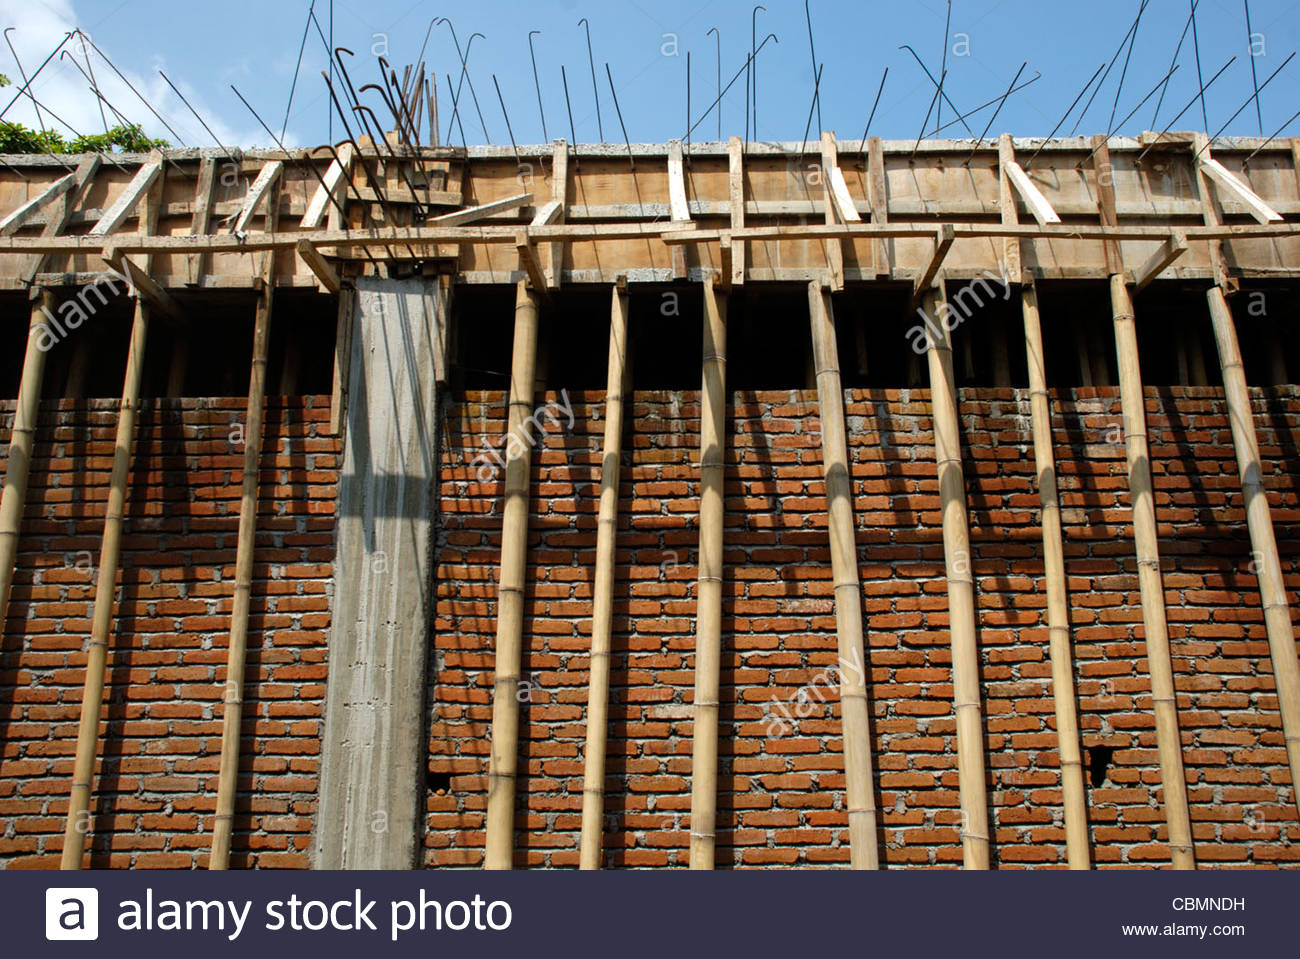 Bamboo poles supporting a newly poured reinforced horizontal beam in building under construction - Stock Image